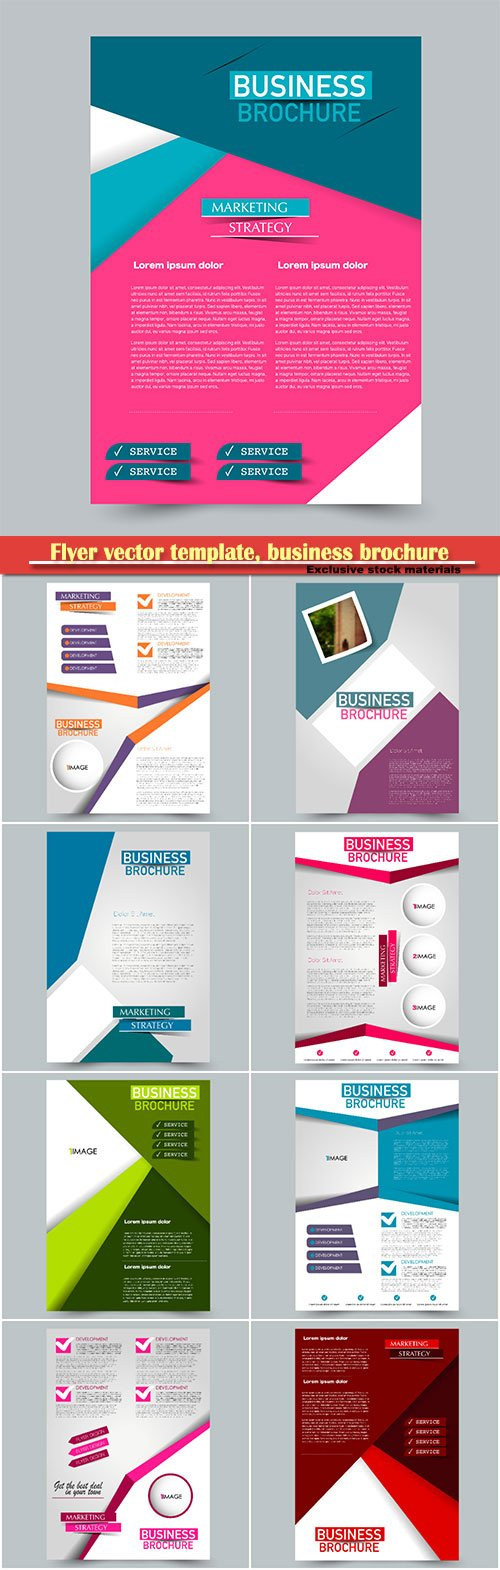 Flyer vector template, business brochure, magazine cover # 35